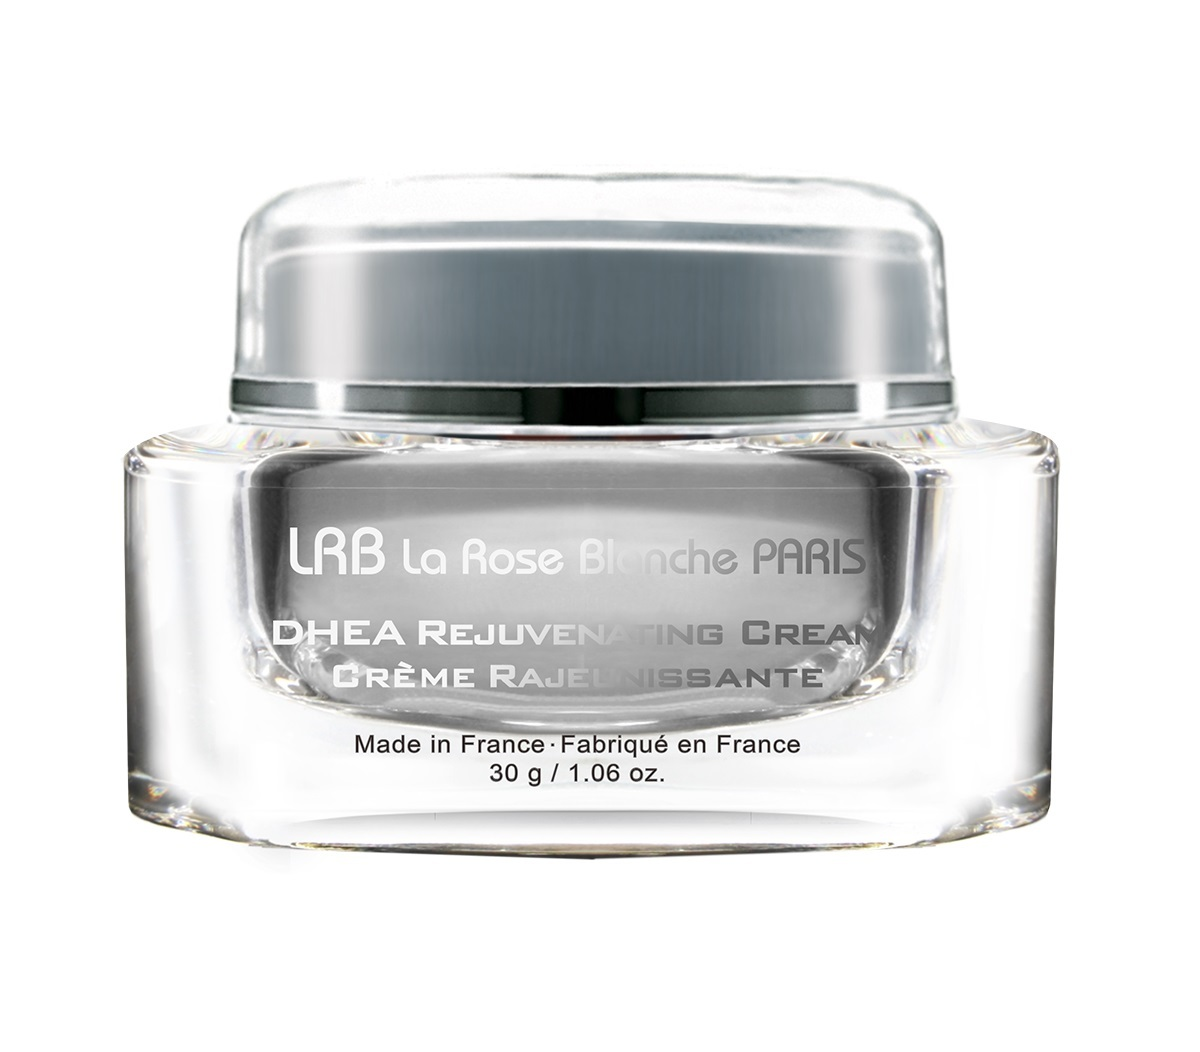 (Made in France) DHEA REJUVENATING CREAM 30g